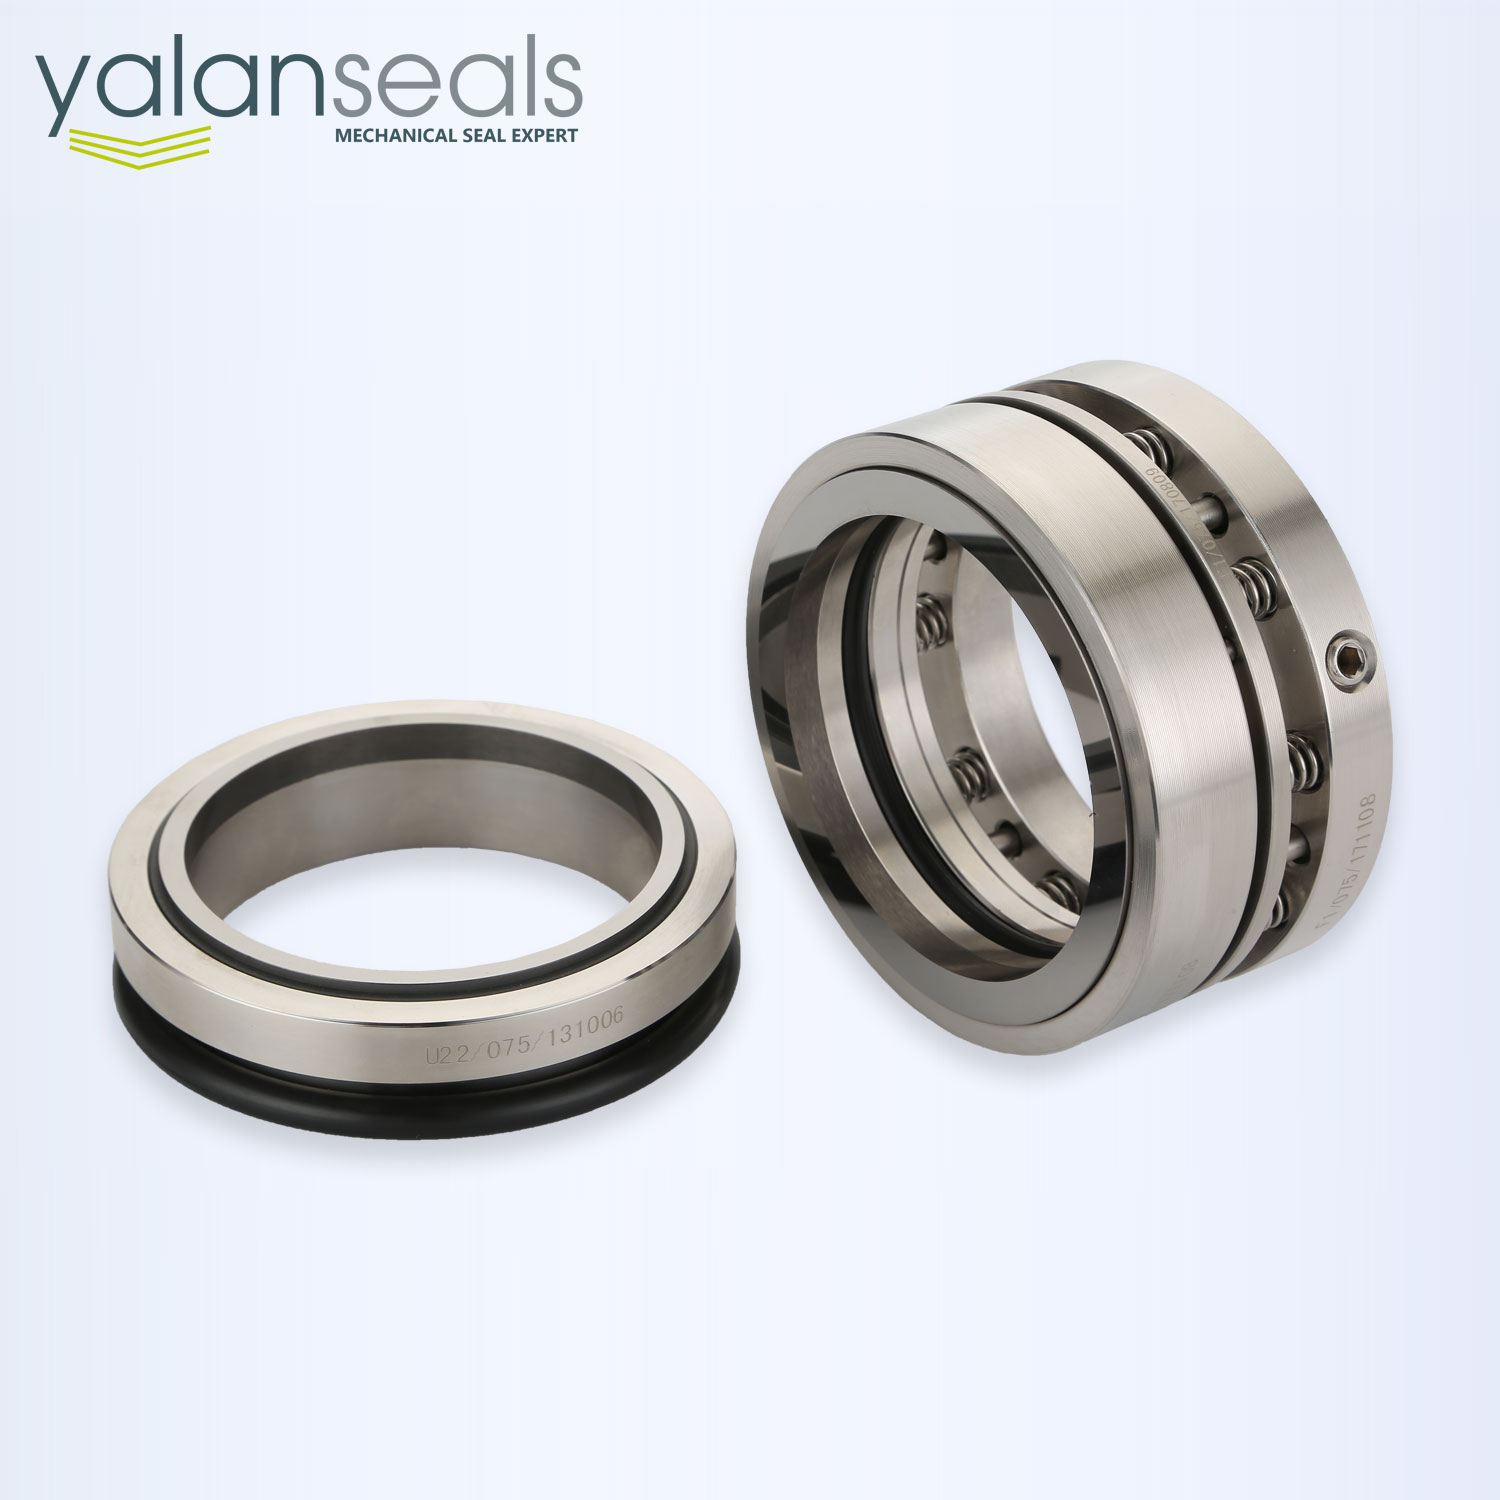 105 Mechanical Seal for Chemical Centrifugal Pumps, Screw Pumps, and Sewage Pumps